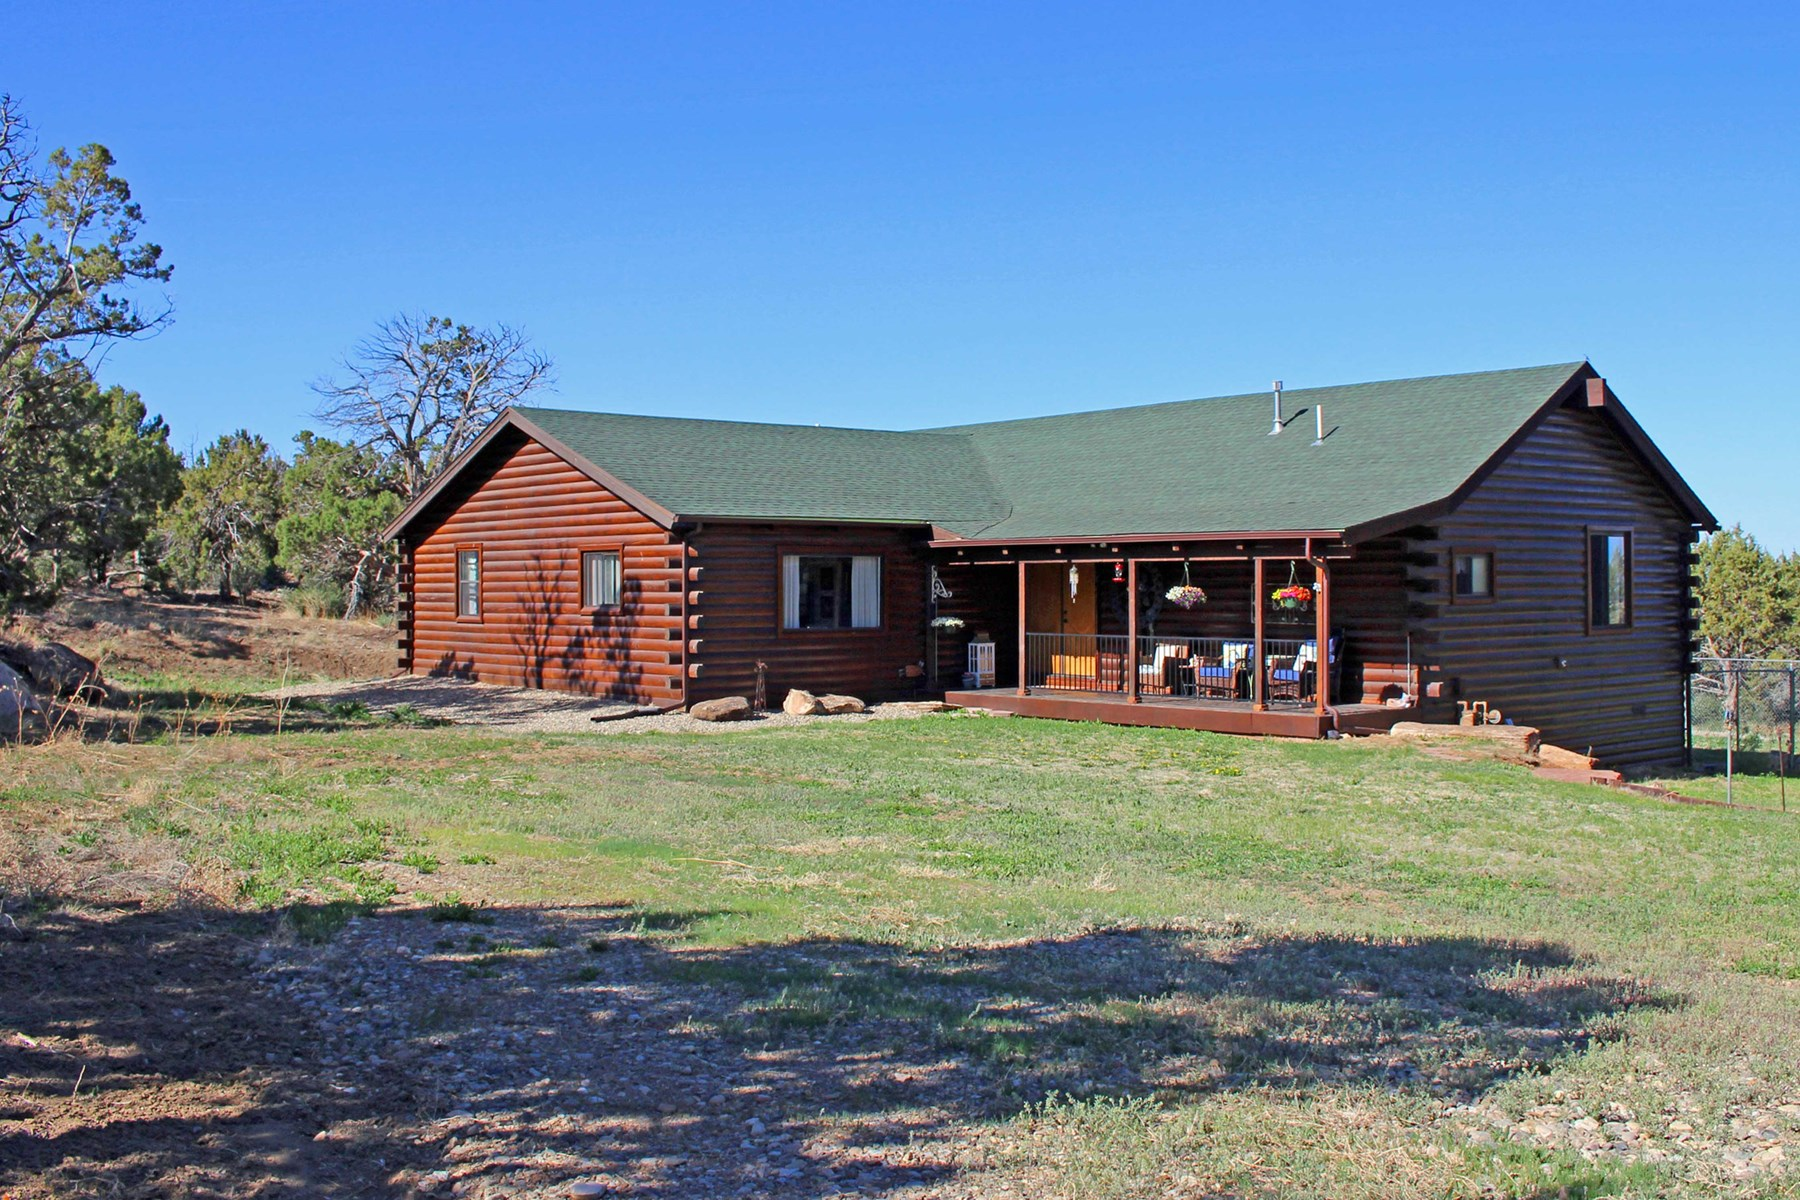 Updated 3 bedroom/3 bath log home on 3 wooded acres in CO